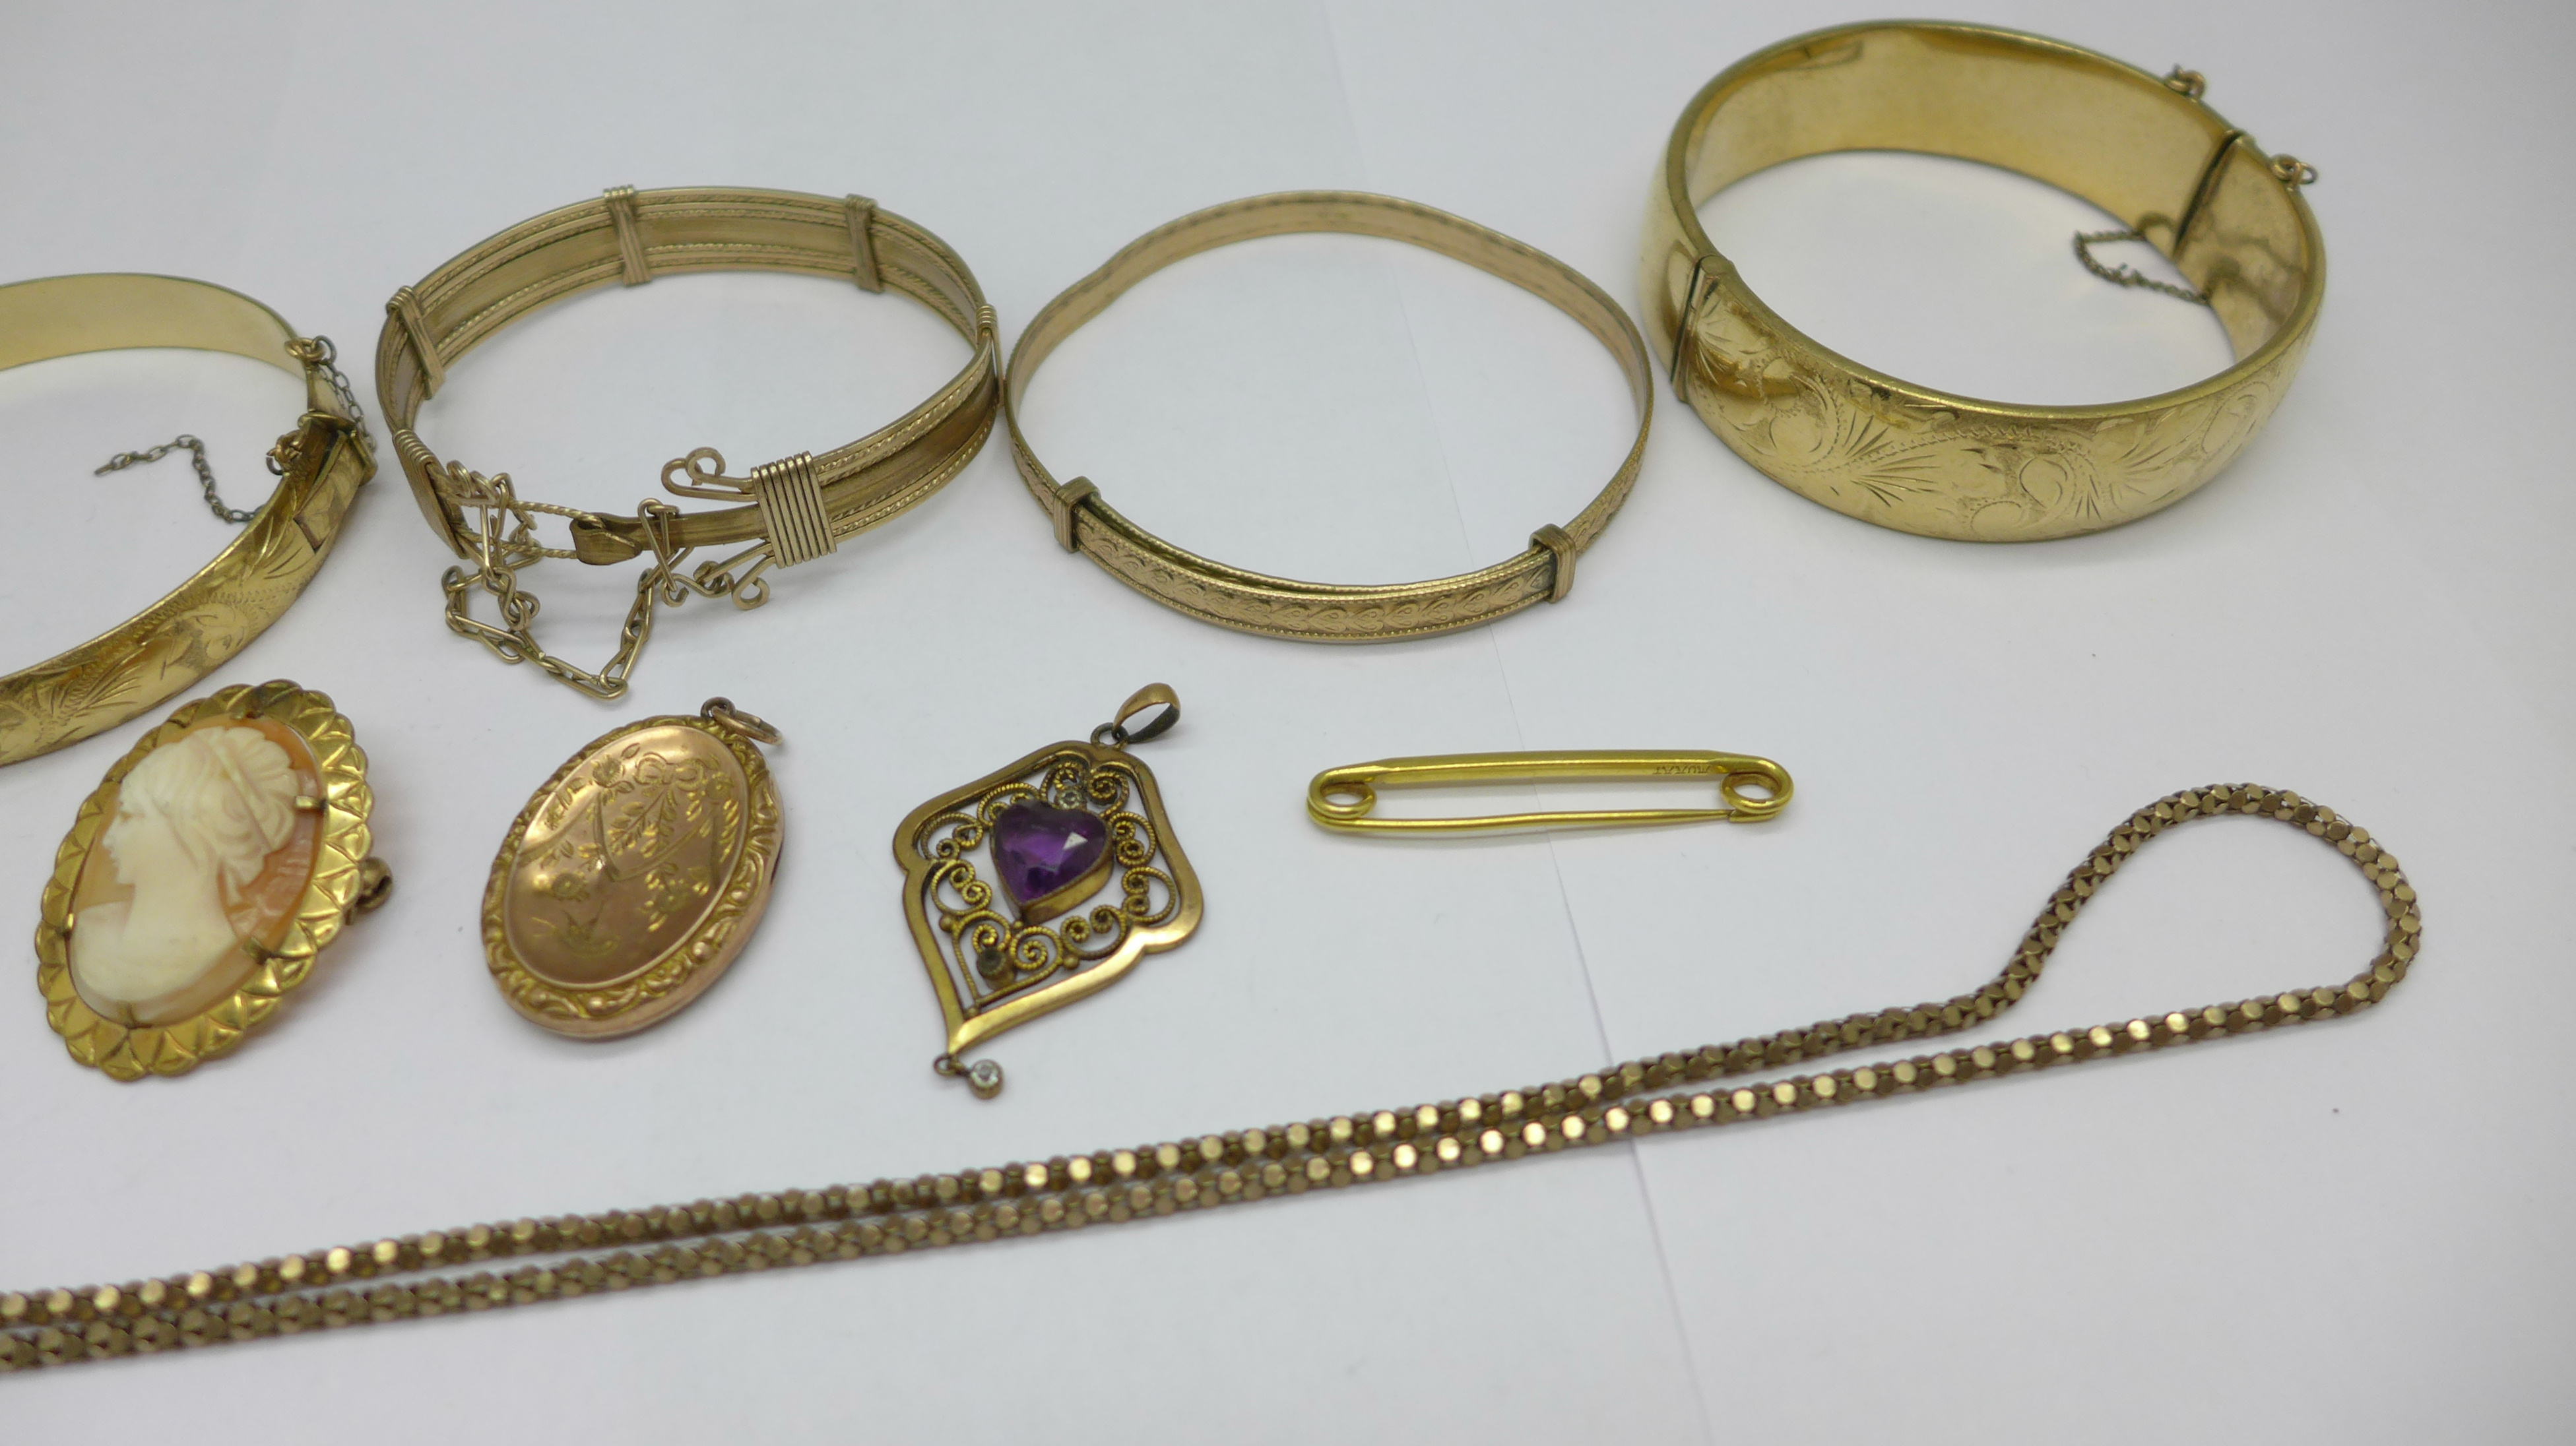 Plated jewellery including five bangles and a 9ct back & front locket - Image 3 of 3